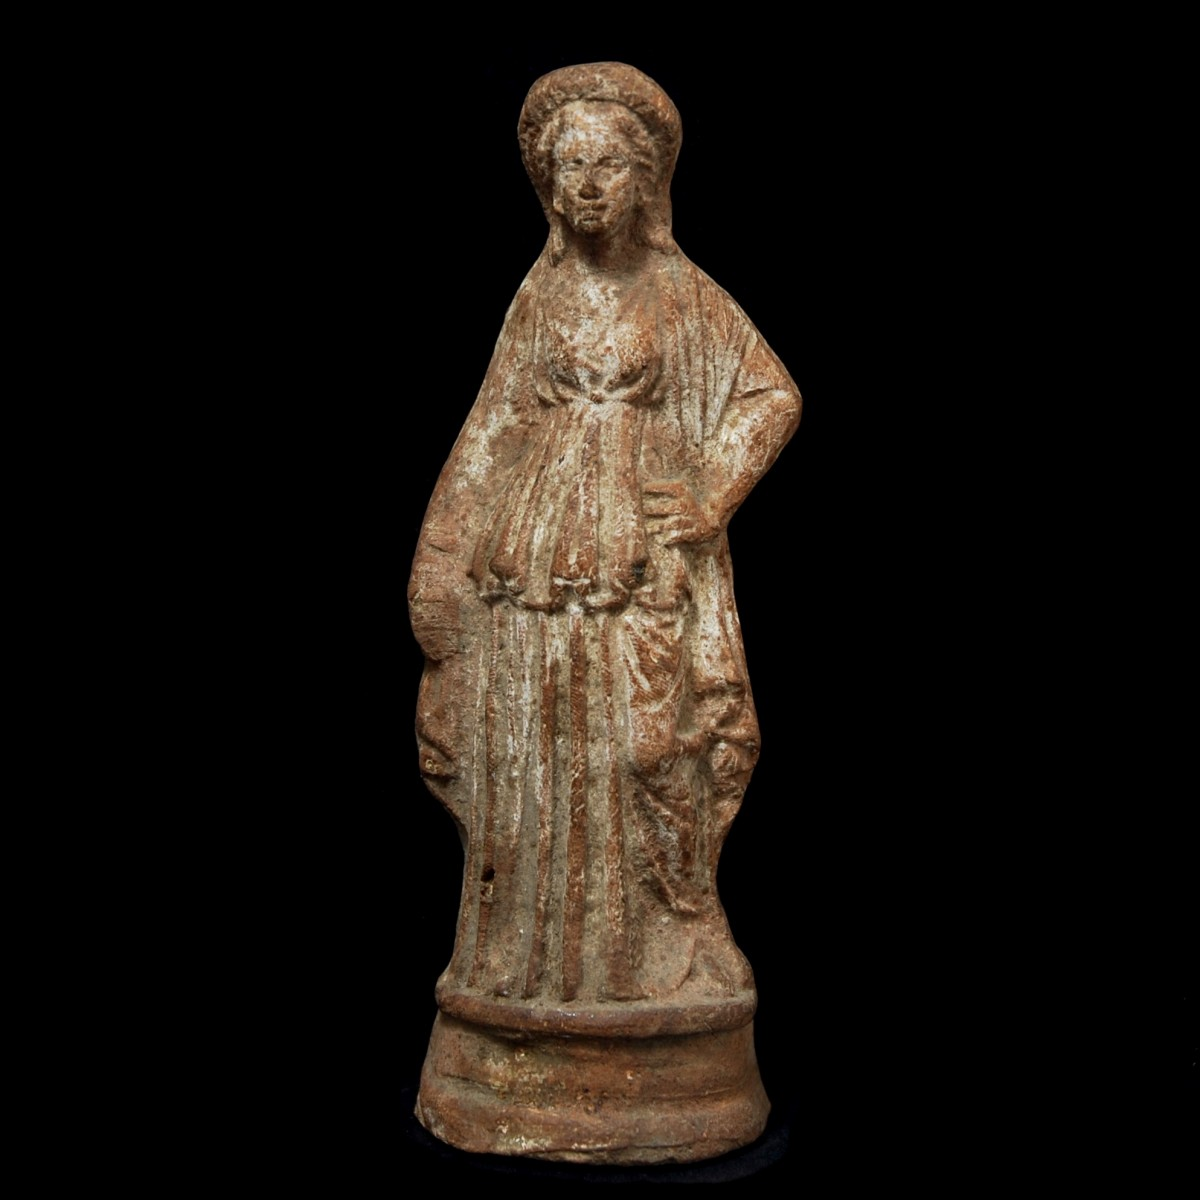 Cypriot terracotta statue of a woman